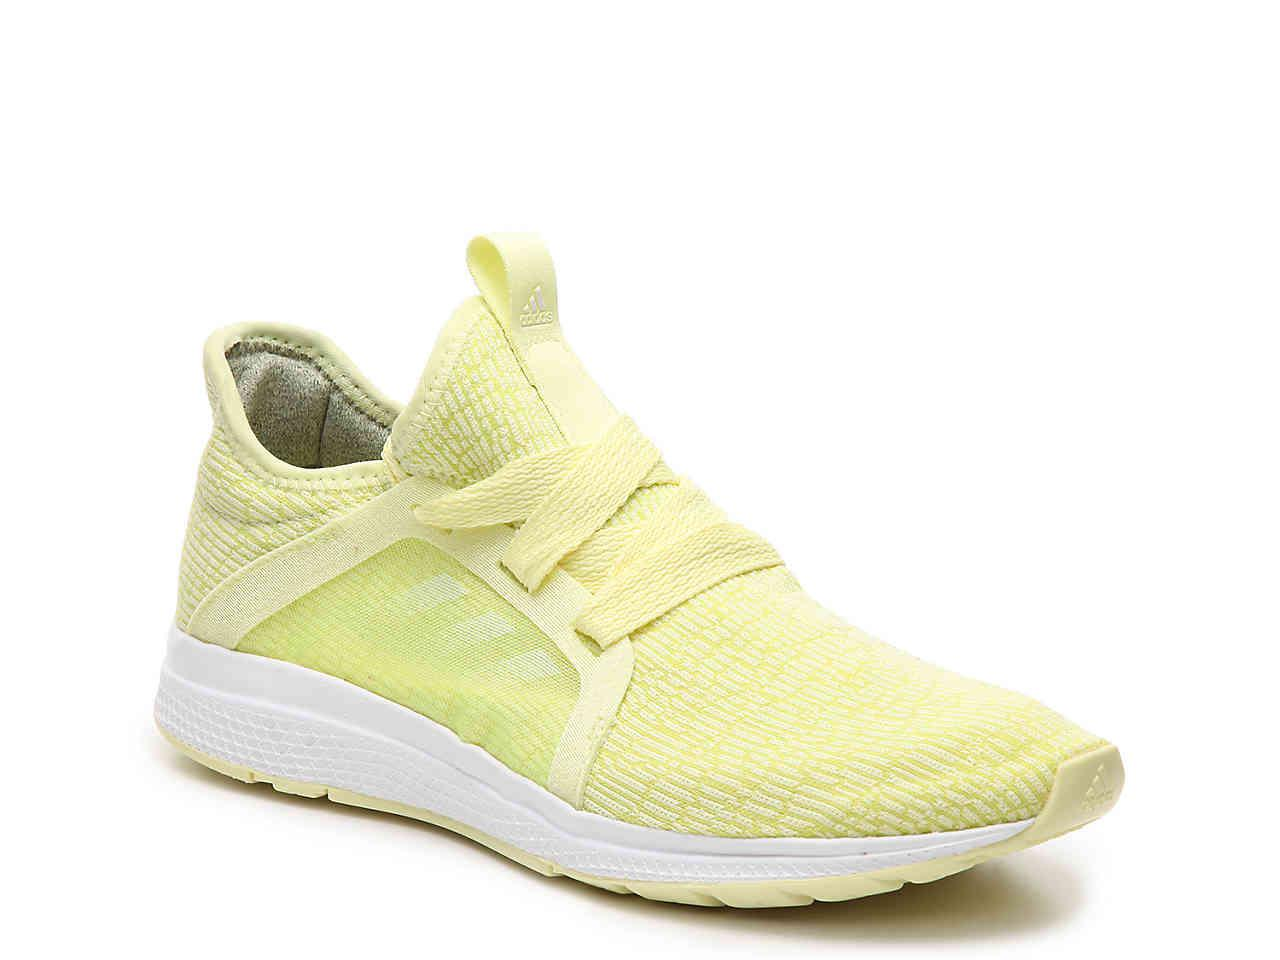 80db925de Lyst - adidas Edge Bounce Lightweight Running Shoe in Yellow